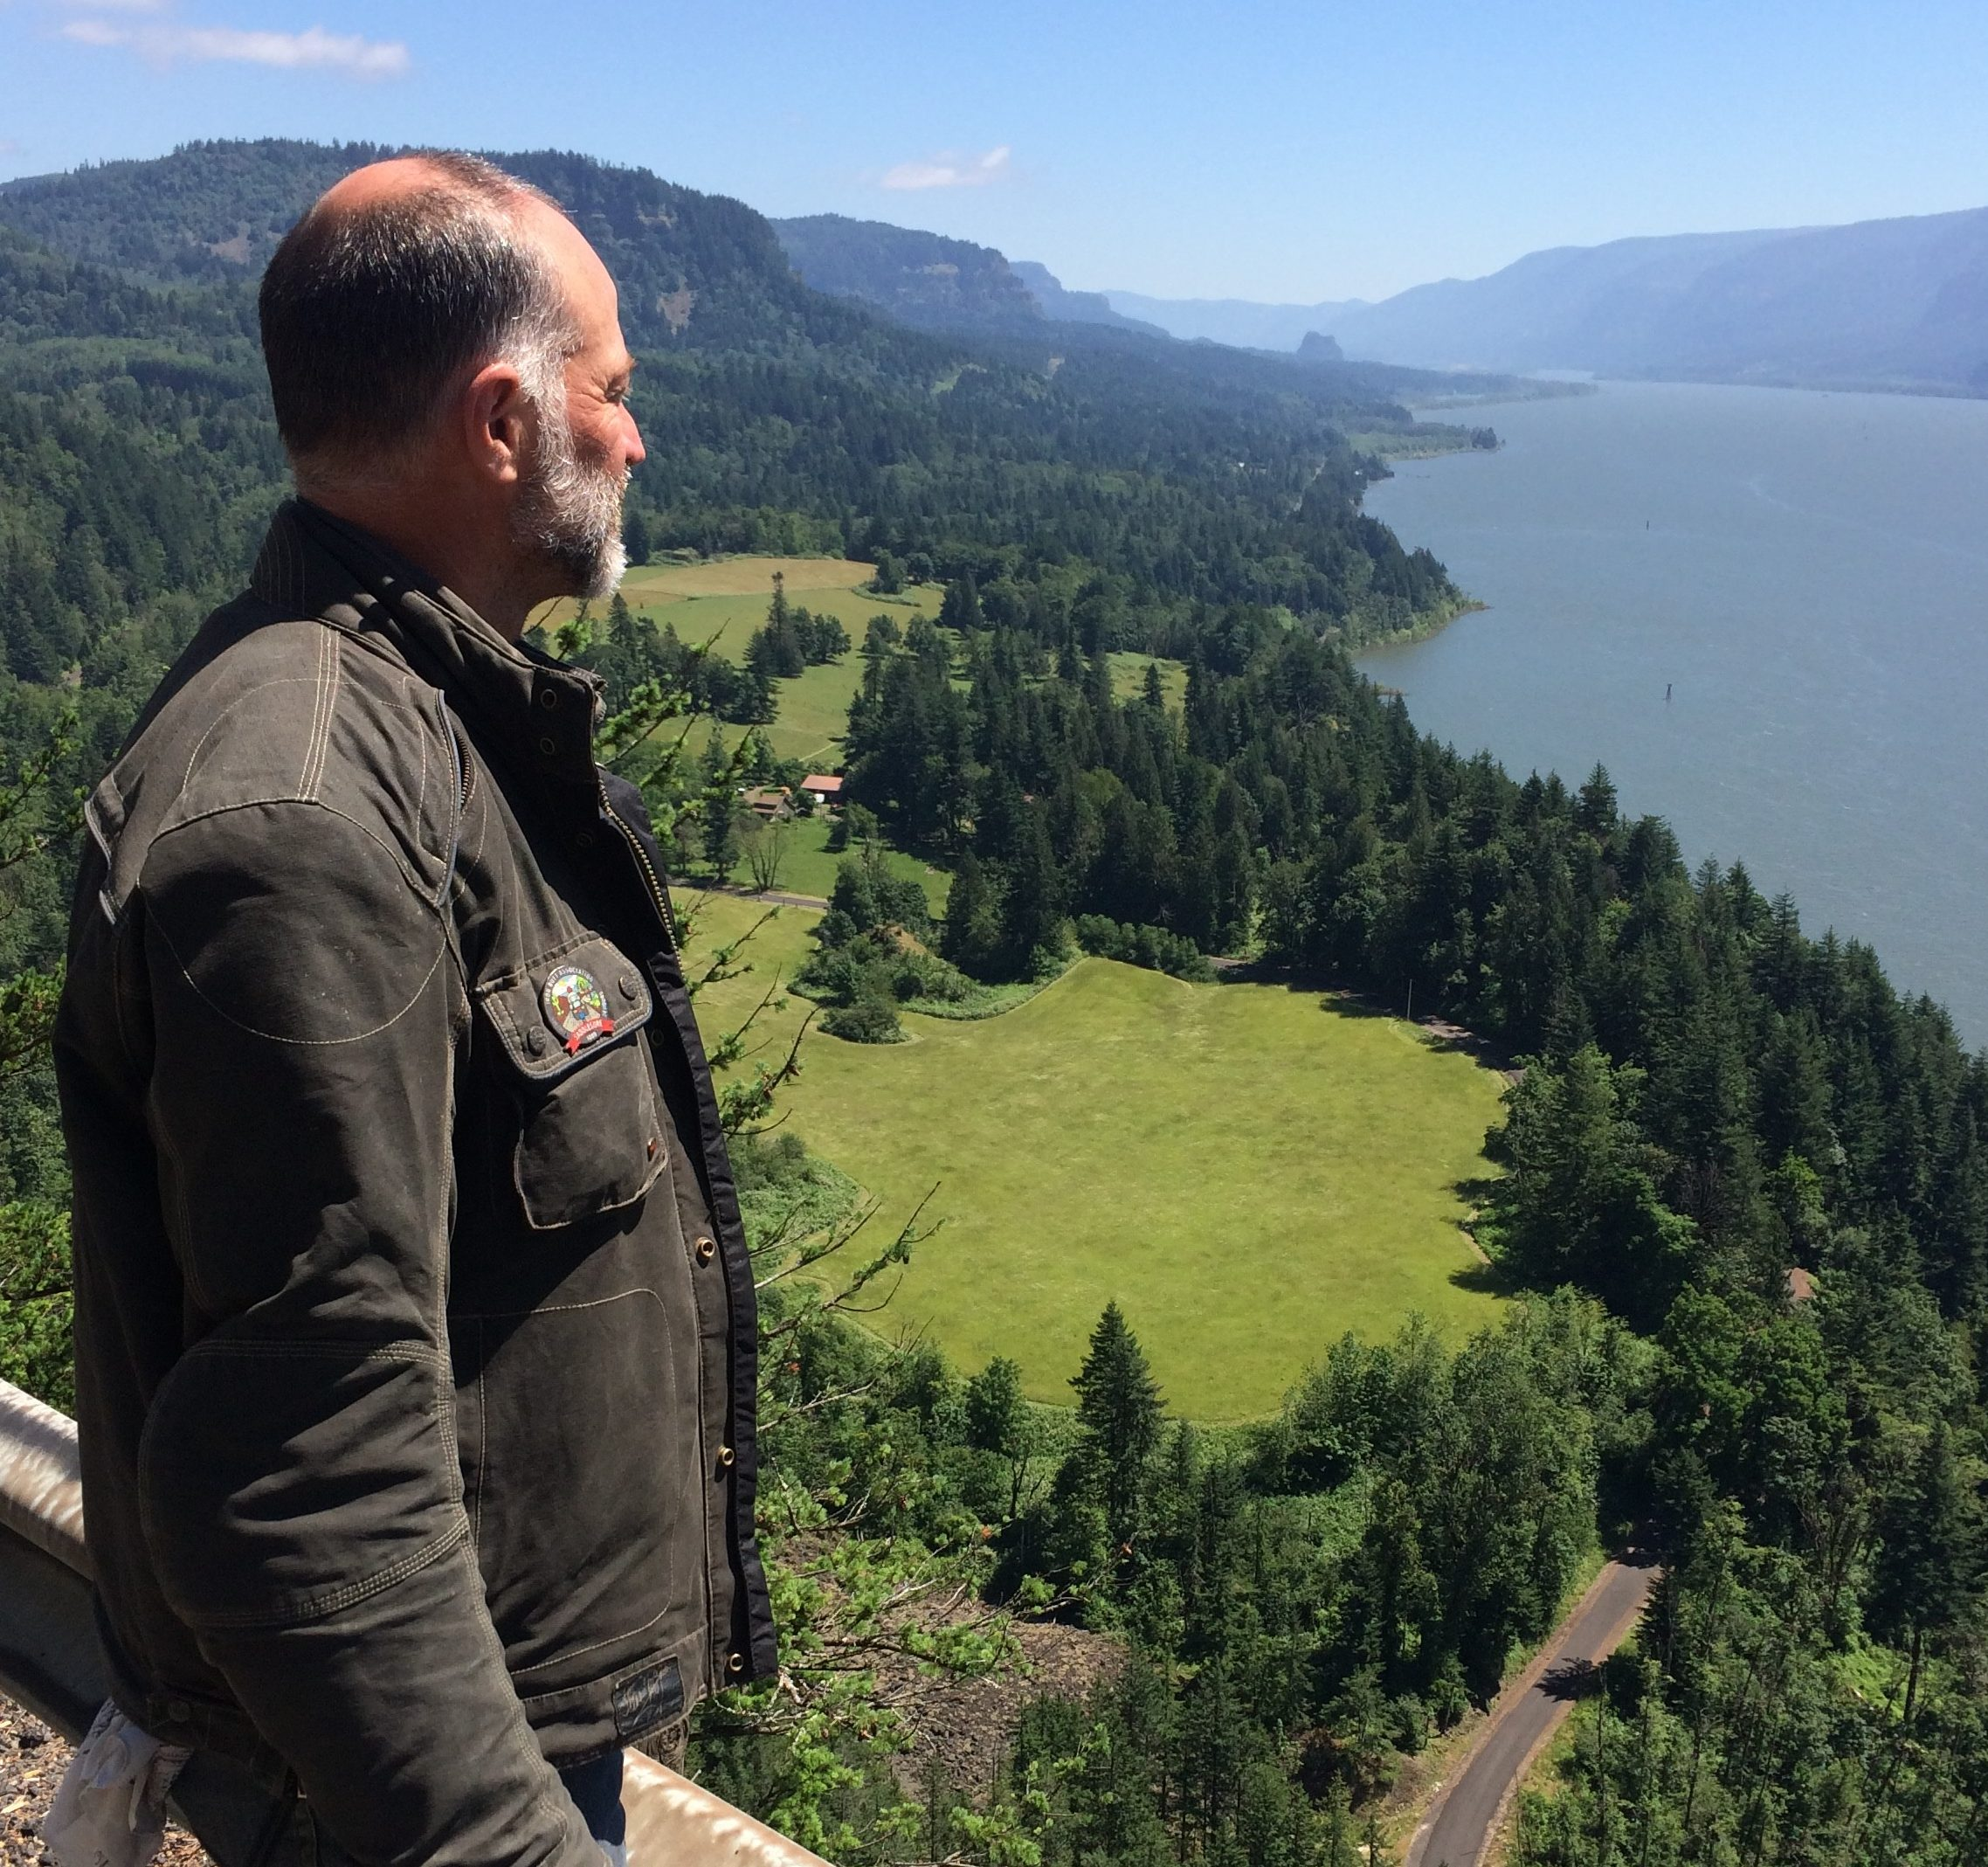 The Best Laid Plan – Oregon's Scenic Backroads